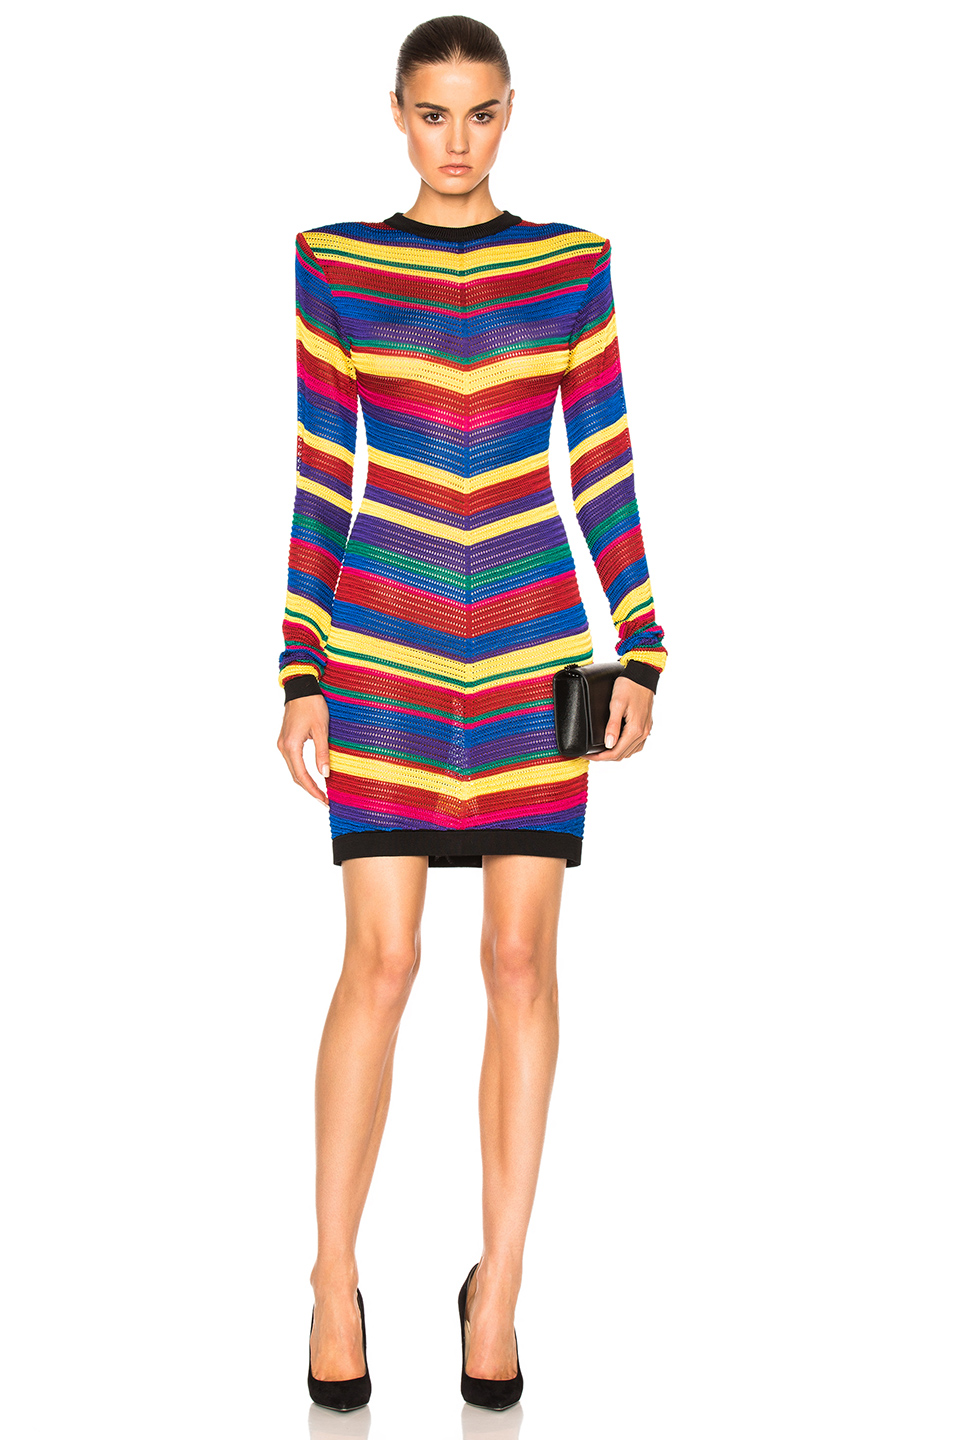 Photo of BALMAIN Stripe Dress in Abstract,Purple,Yellow online sales